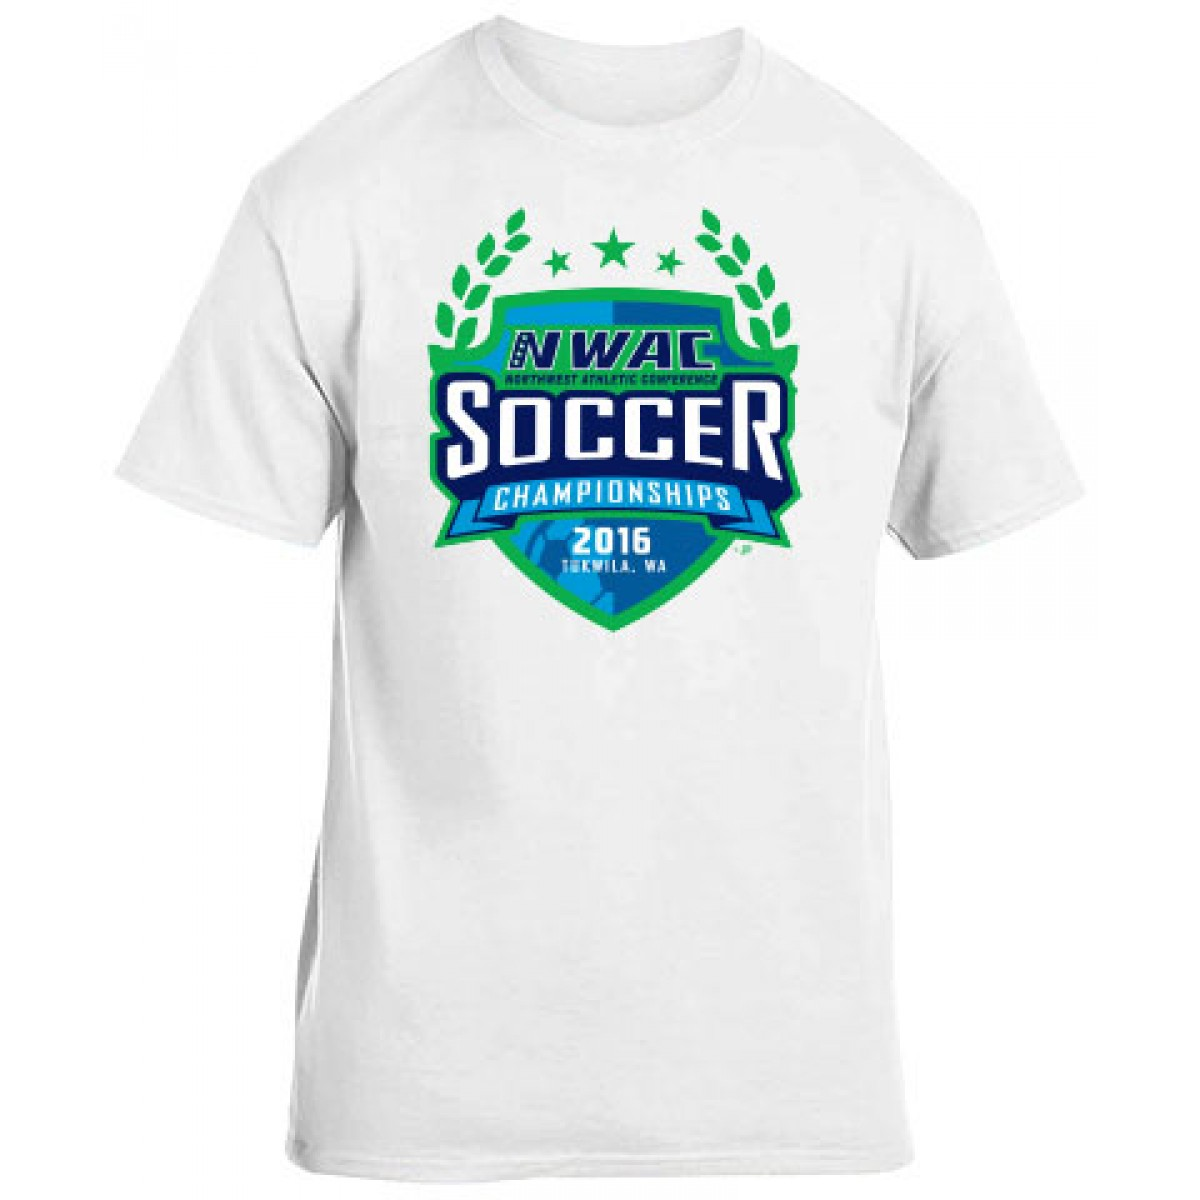 2016 NWAC Soccer Championships Special Item-White-3XL